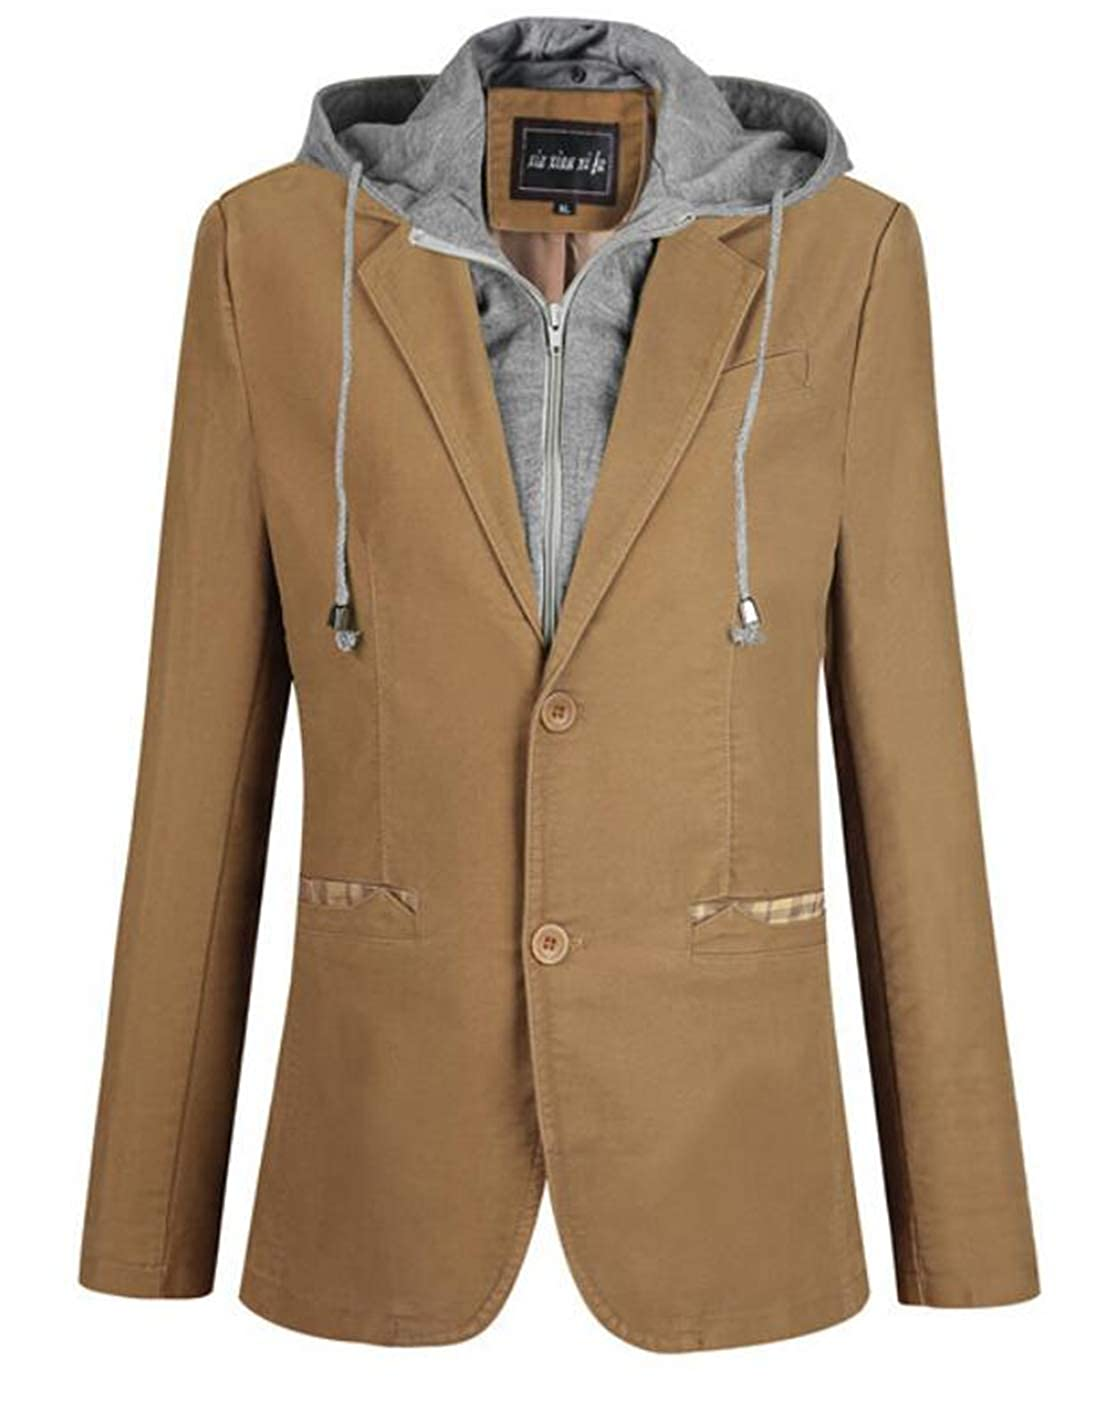 Hurrg Mens Long Sleeve Solid Hooded Drawstring Slim Fit Stylish Two Button Jackets Coat Blazer